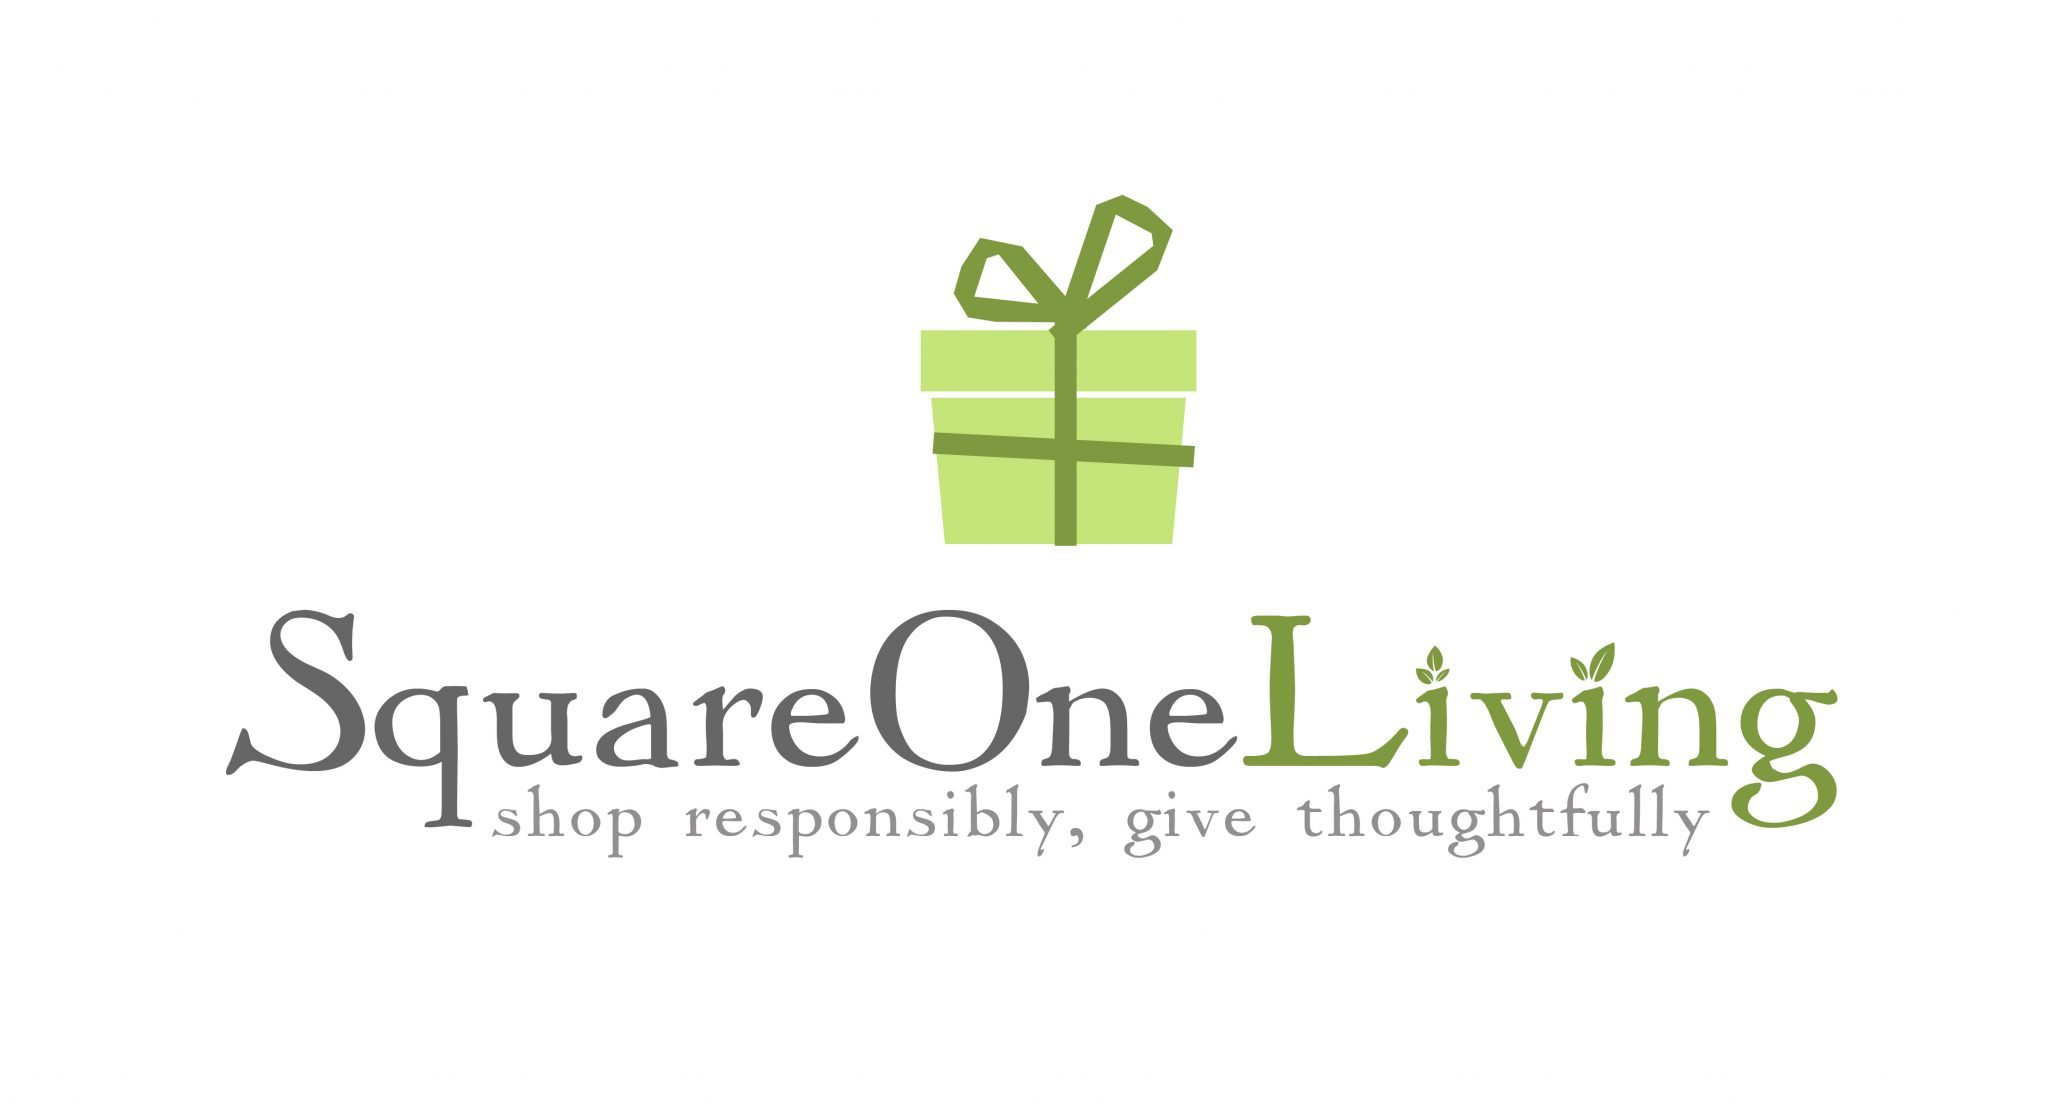 Square One Living